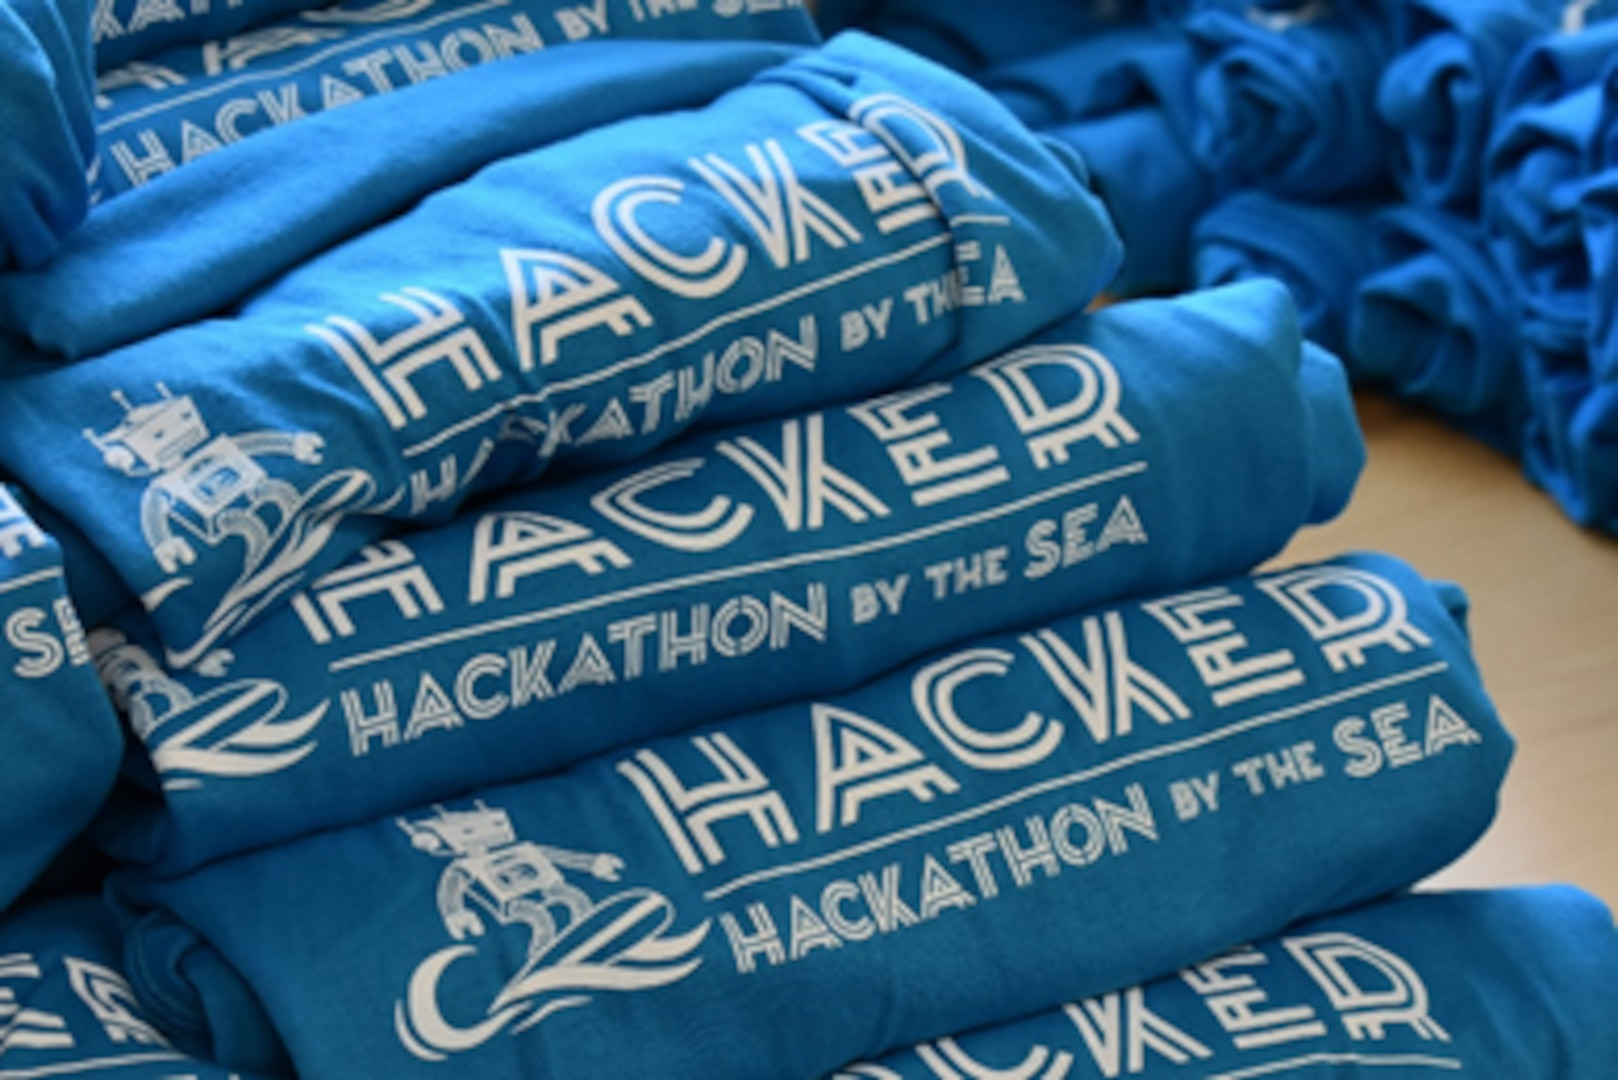 """Students participating in the 2021 Hackathon by the Sea competition received a shirt to commemorate the two-day event hosted by NSWC PHD, Naval Air Warfare Center Weapons Division, and Naval Facilities Engineering and Expeditionary Warfare Center, in partnership with the Ventura County Office of Education. The theme this year was """"Hack The Future."""